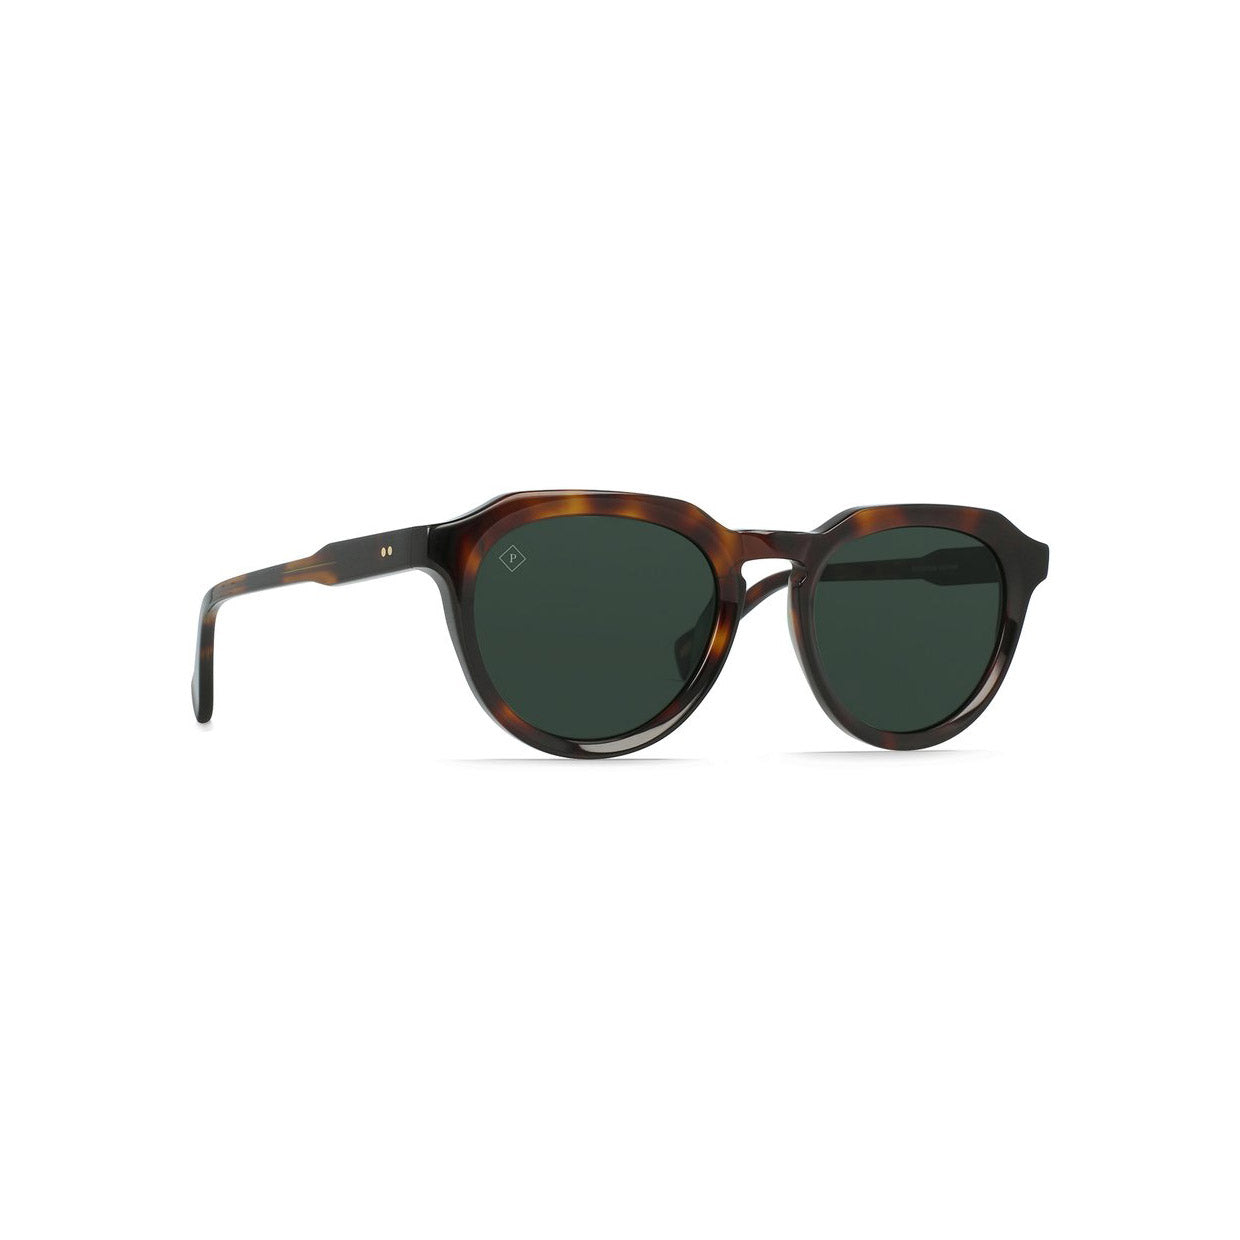 Raen - Sage Sunglasses - Kola Tortoise / Green - NZ Stockist - Raen Sunglasses Stockist - Paper Plane - Shop Online